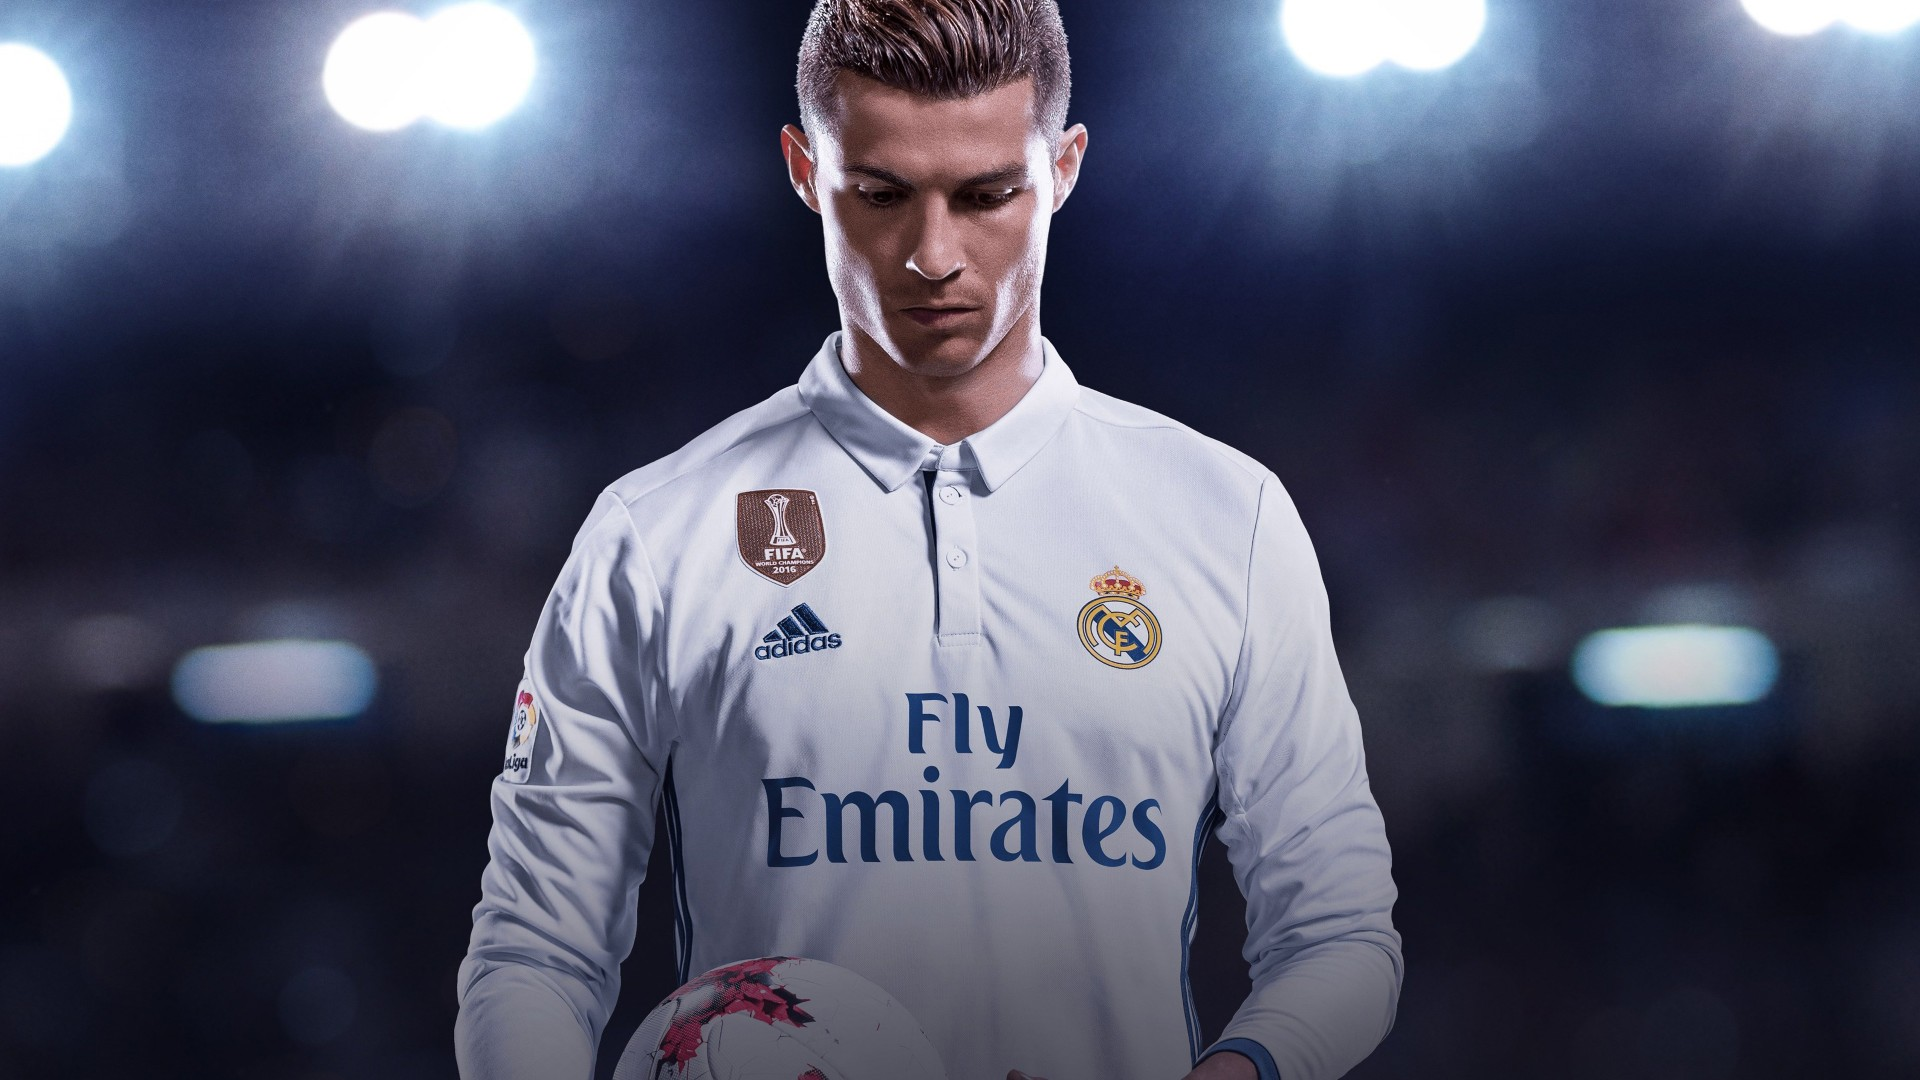 Cristiano Ronaldo FIFA 18 Wallpapers HD Wallpapers ID